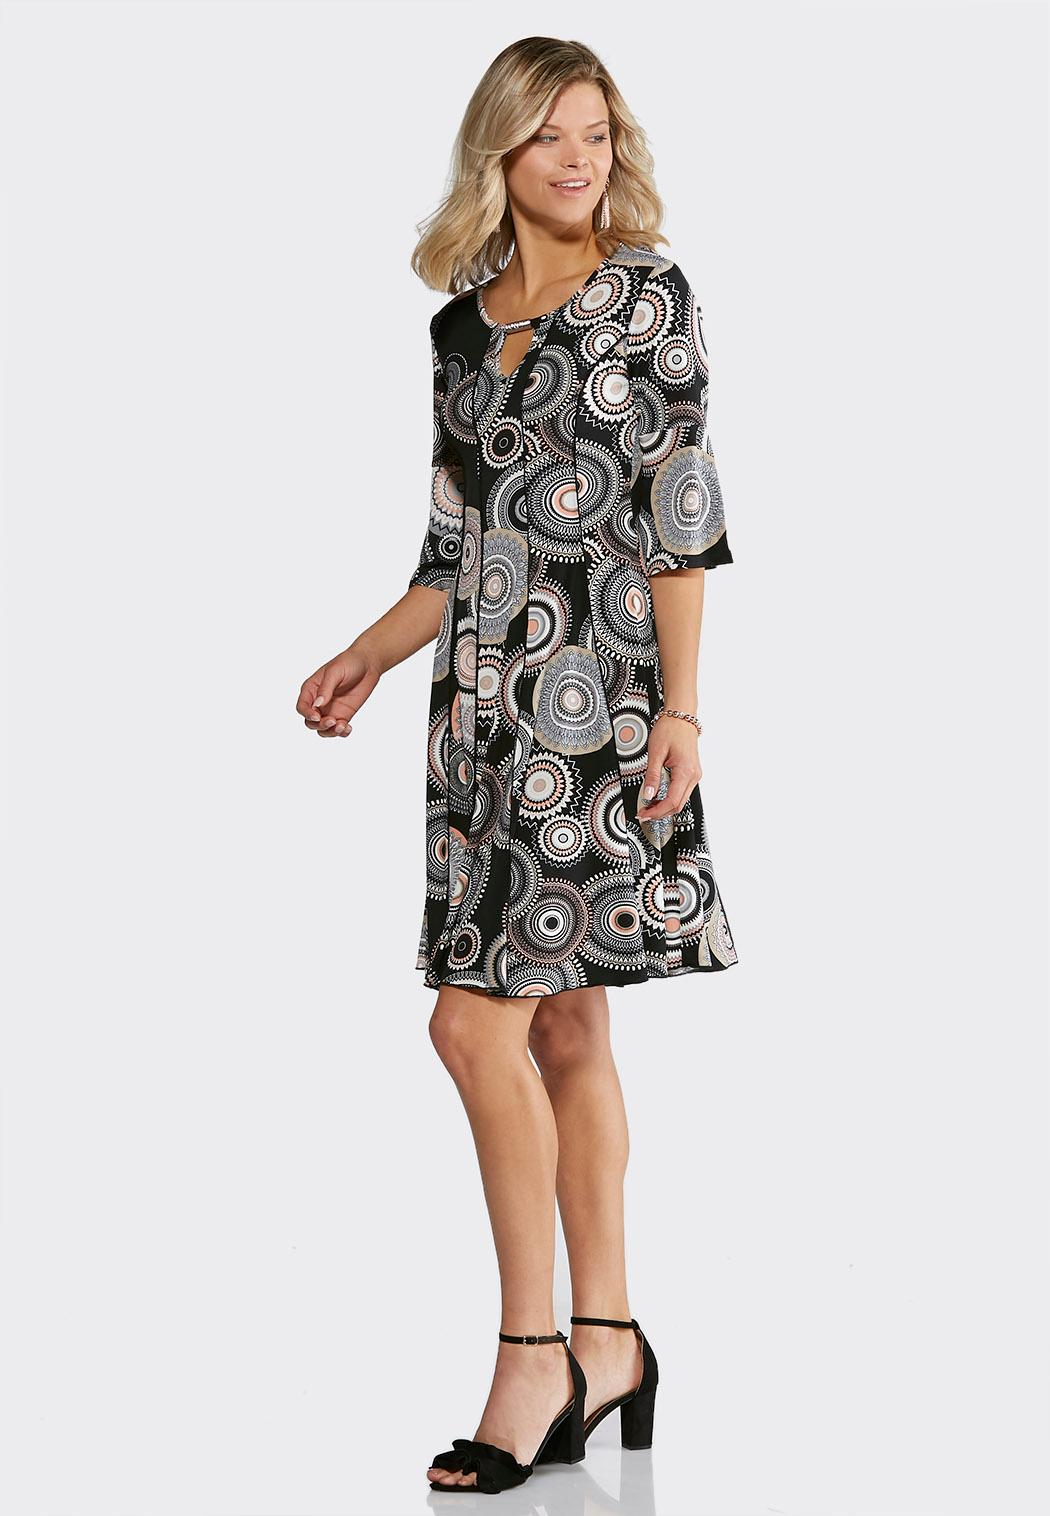 Plus Size Seamed Mod Pink Dress A Line Swing Cato Fashions